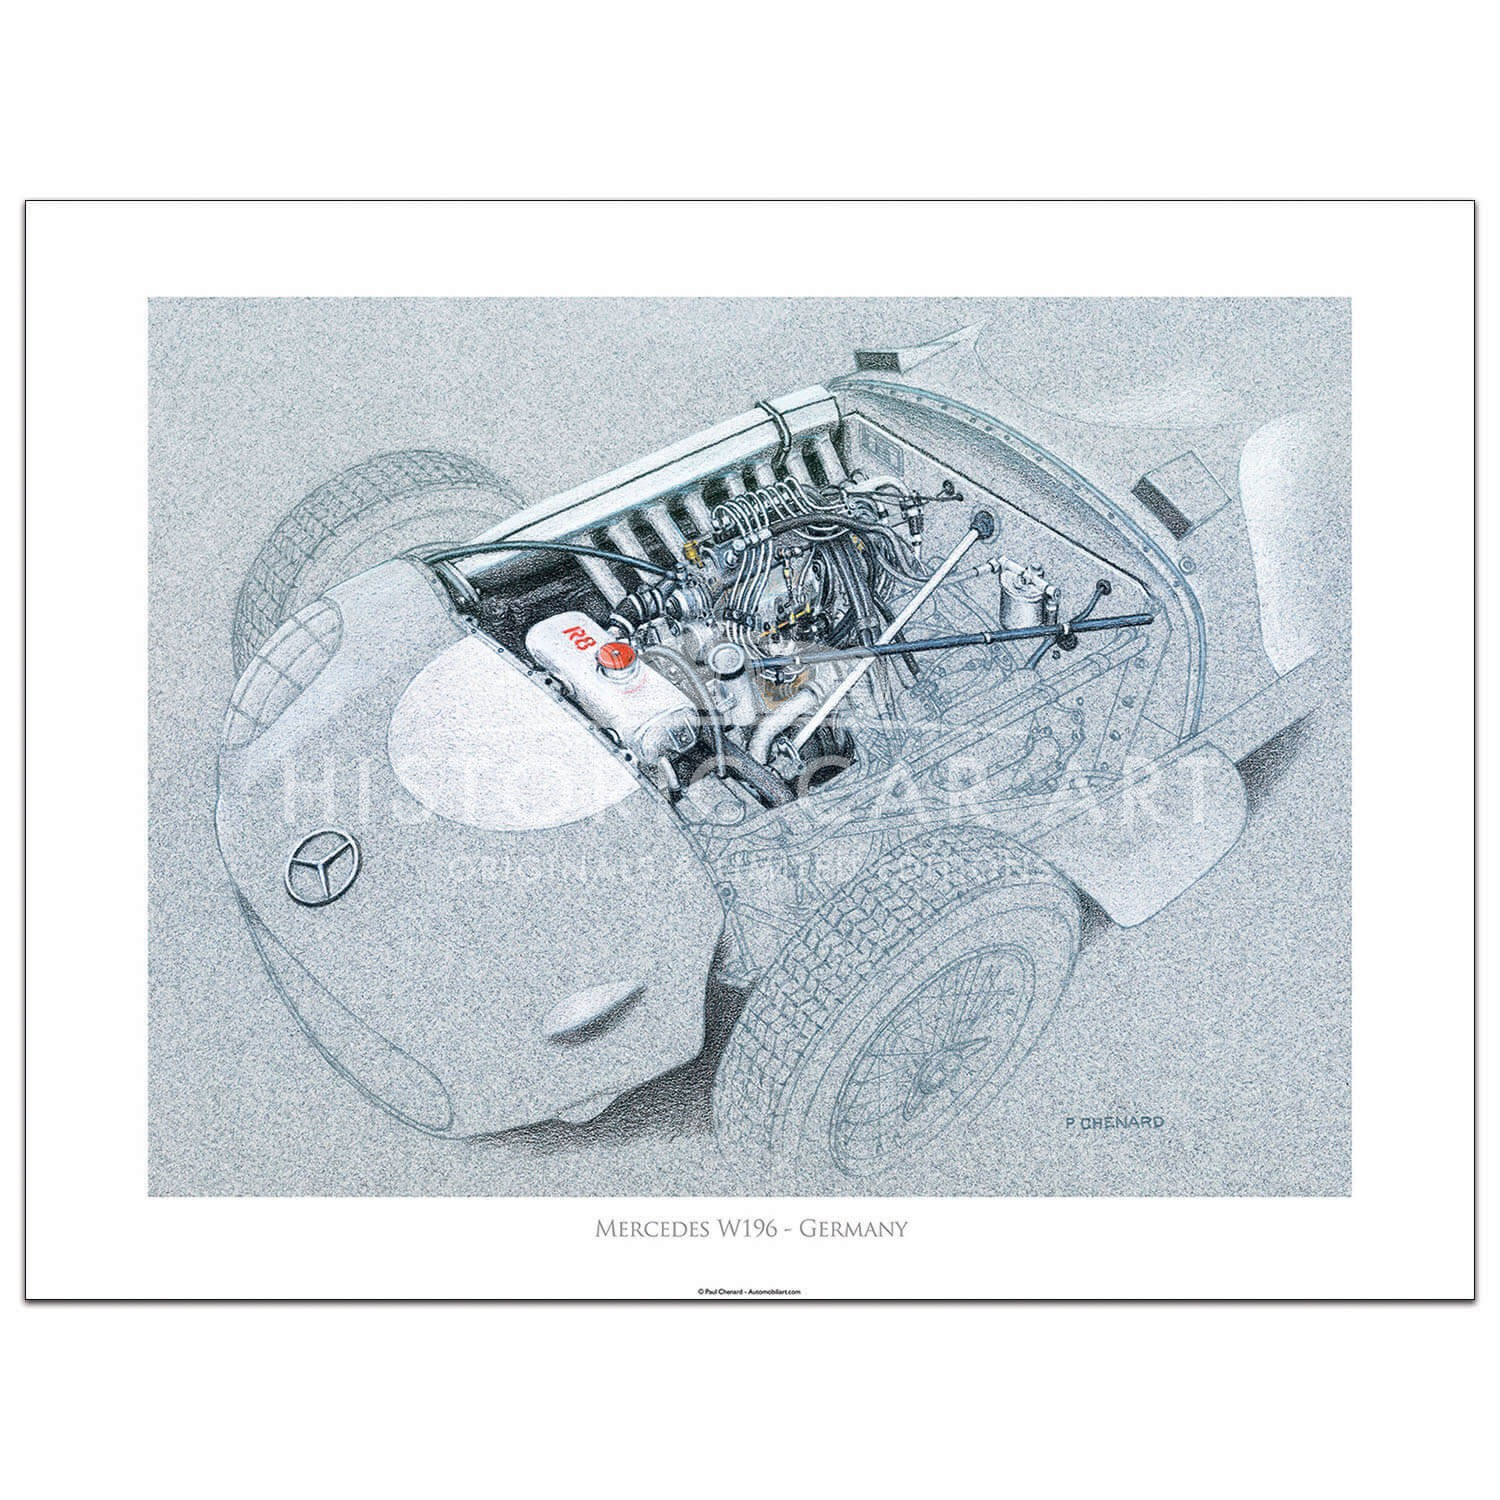 Grand Prix Engine Series - Mercedes W196 - Print